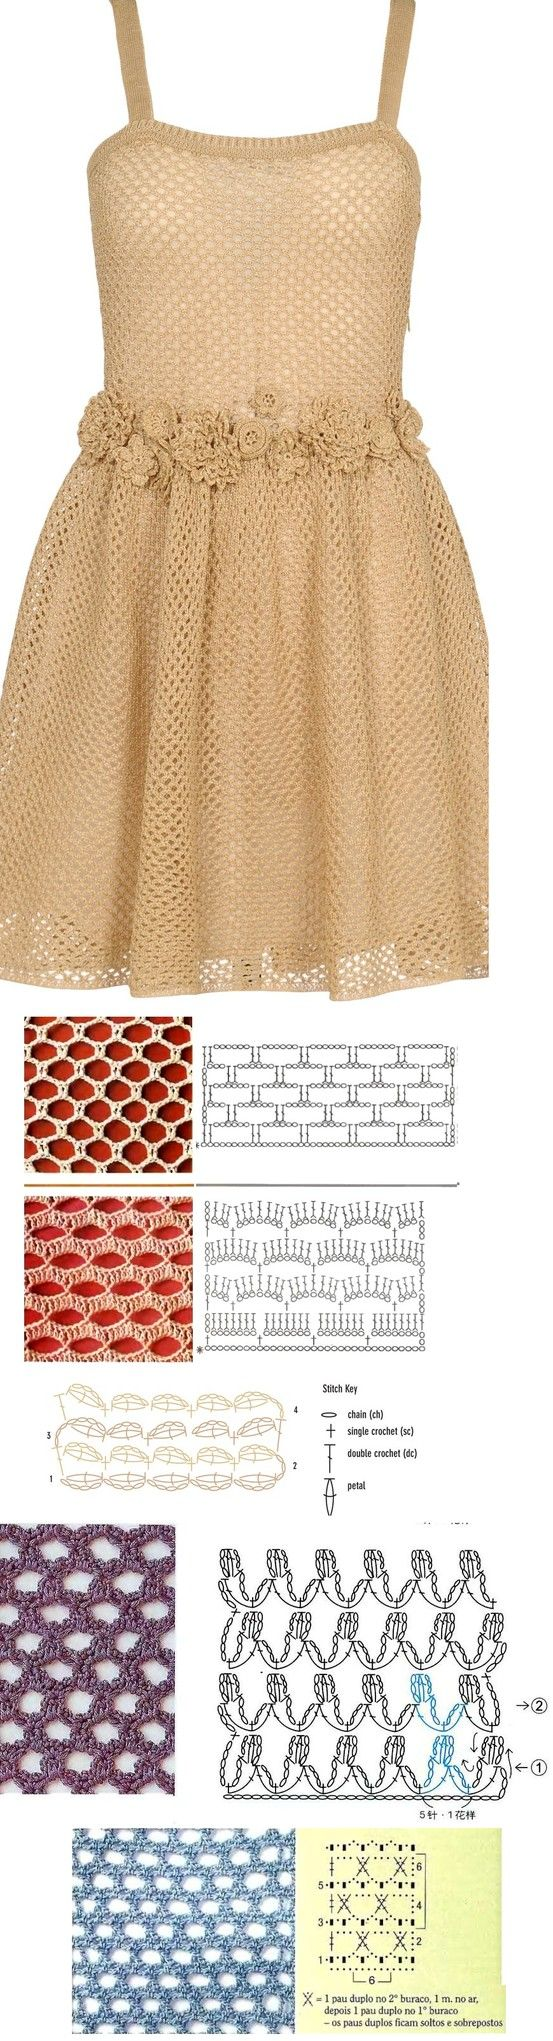 Valentino crochet dress - here are some possible mesh stitches to make it... ♥